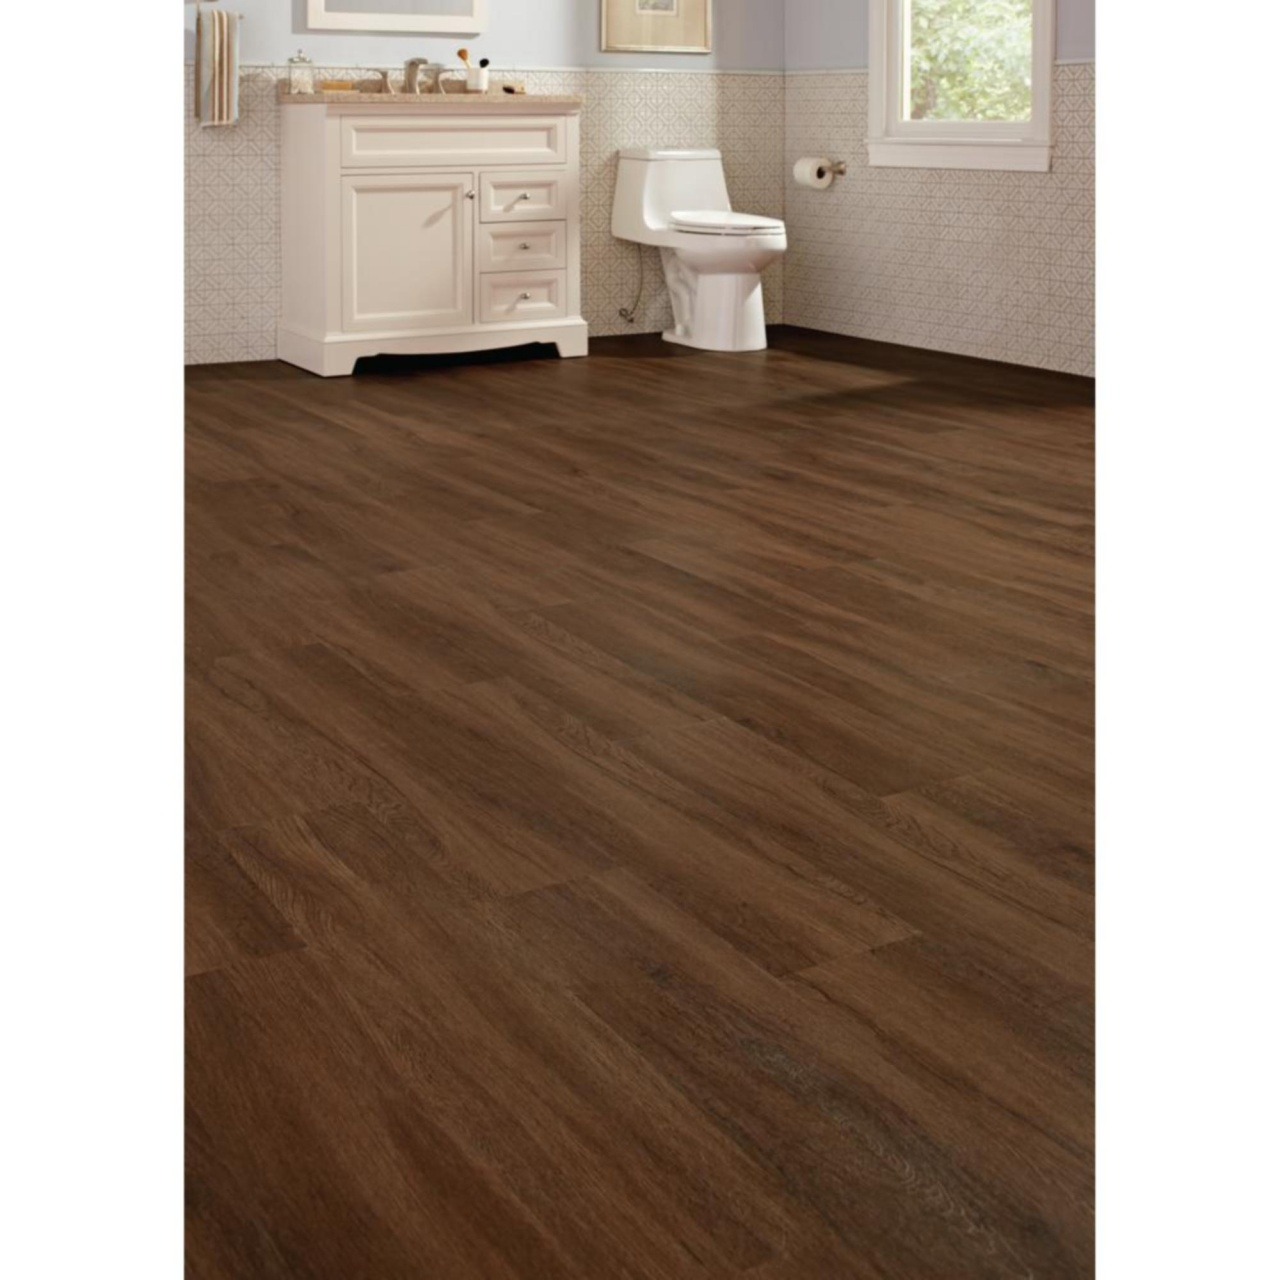 Vinyl Plank Flooring Vs Hardwood Equalmarriagefl